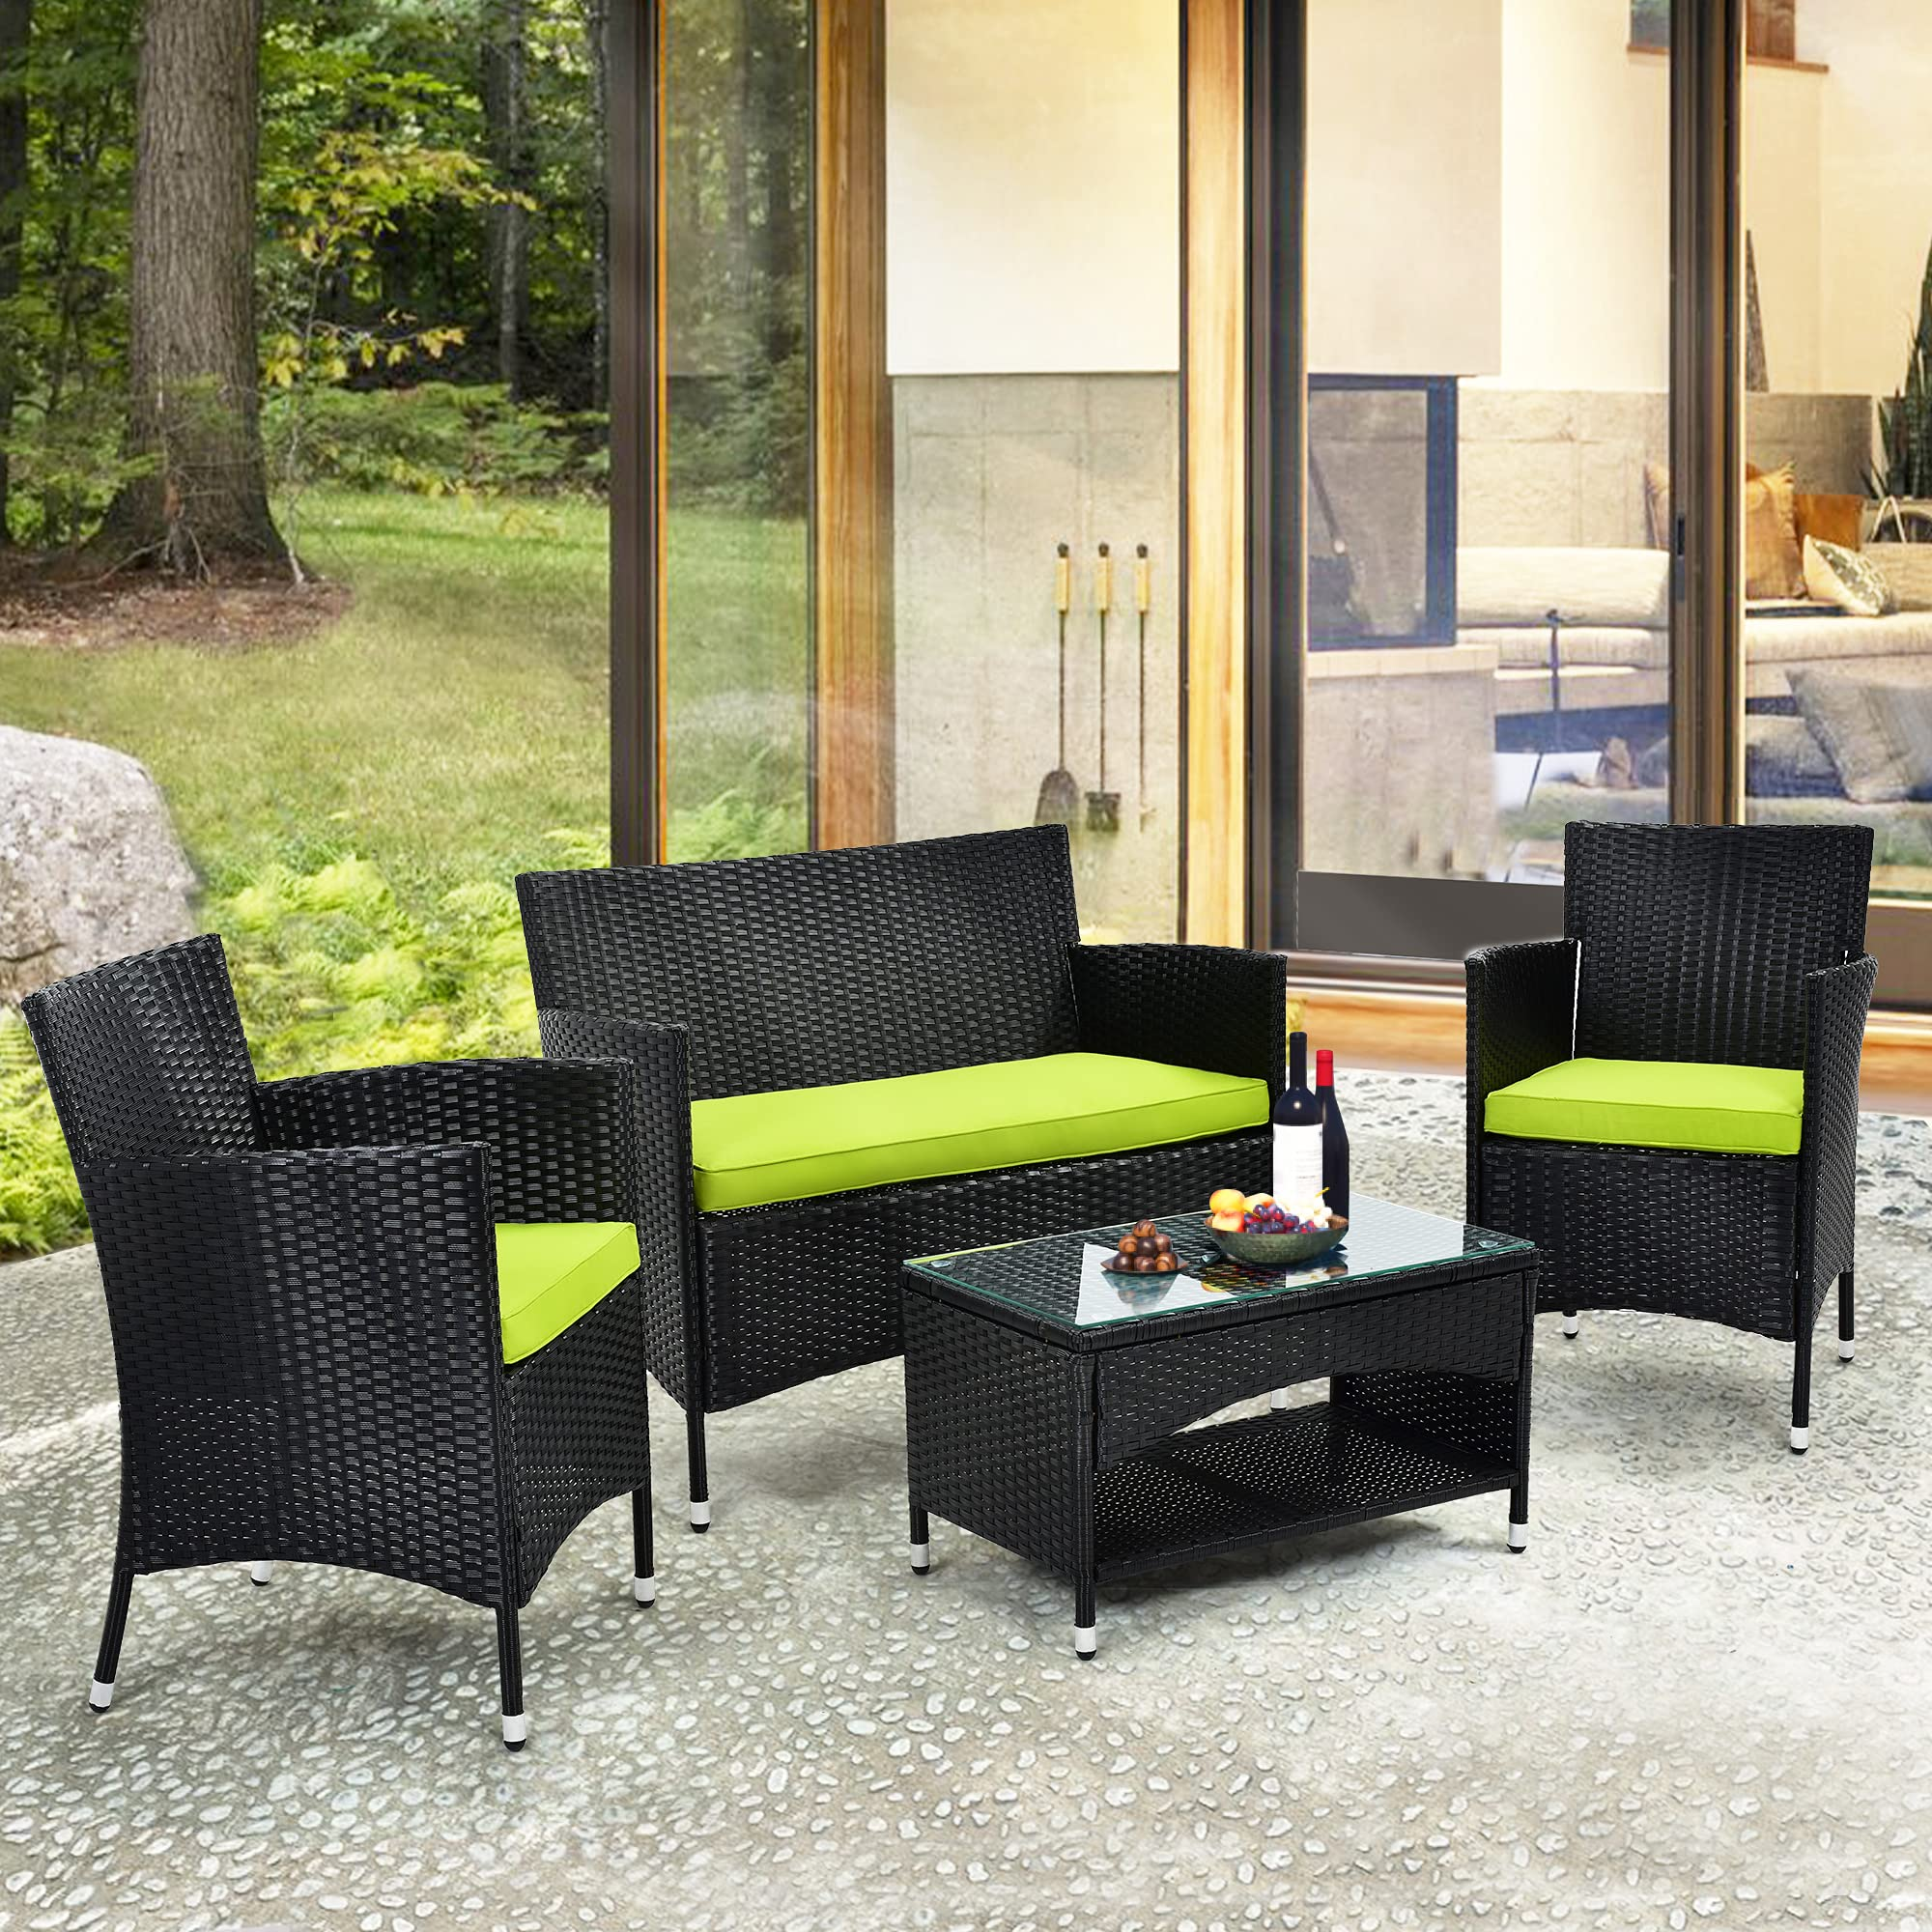 merax 4 pc rattan patio furniture set wicker conversation set garden lawn outdoor sofa set cushioned seat tempered glass table top